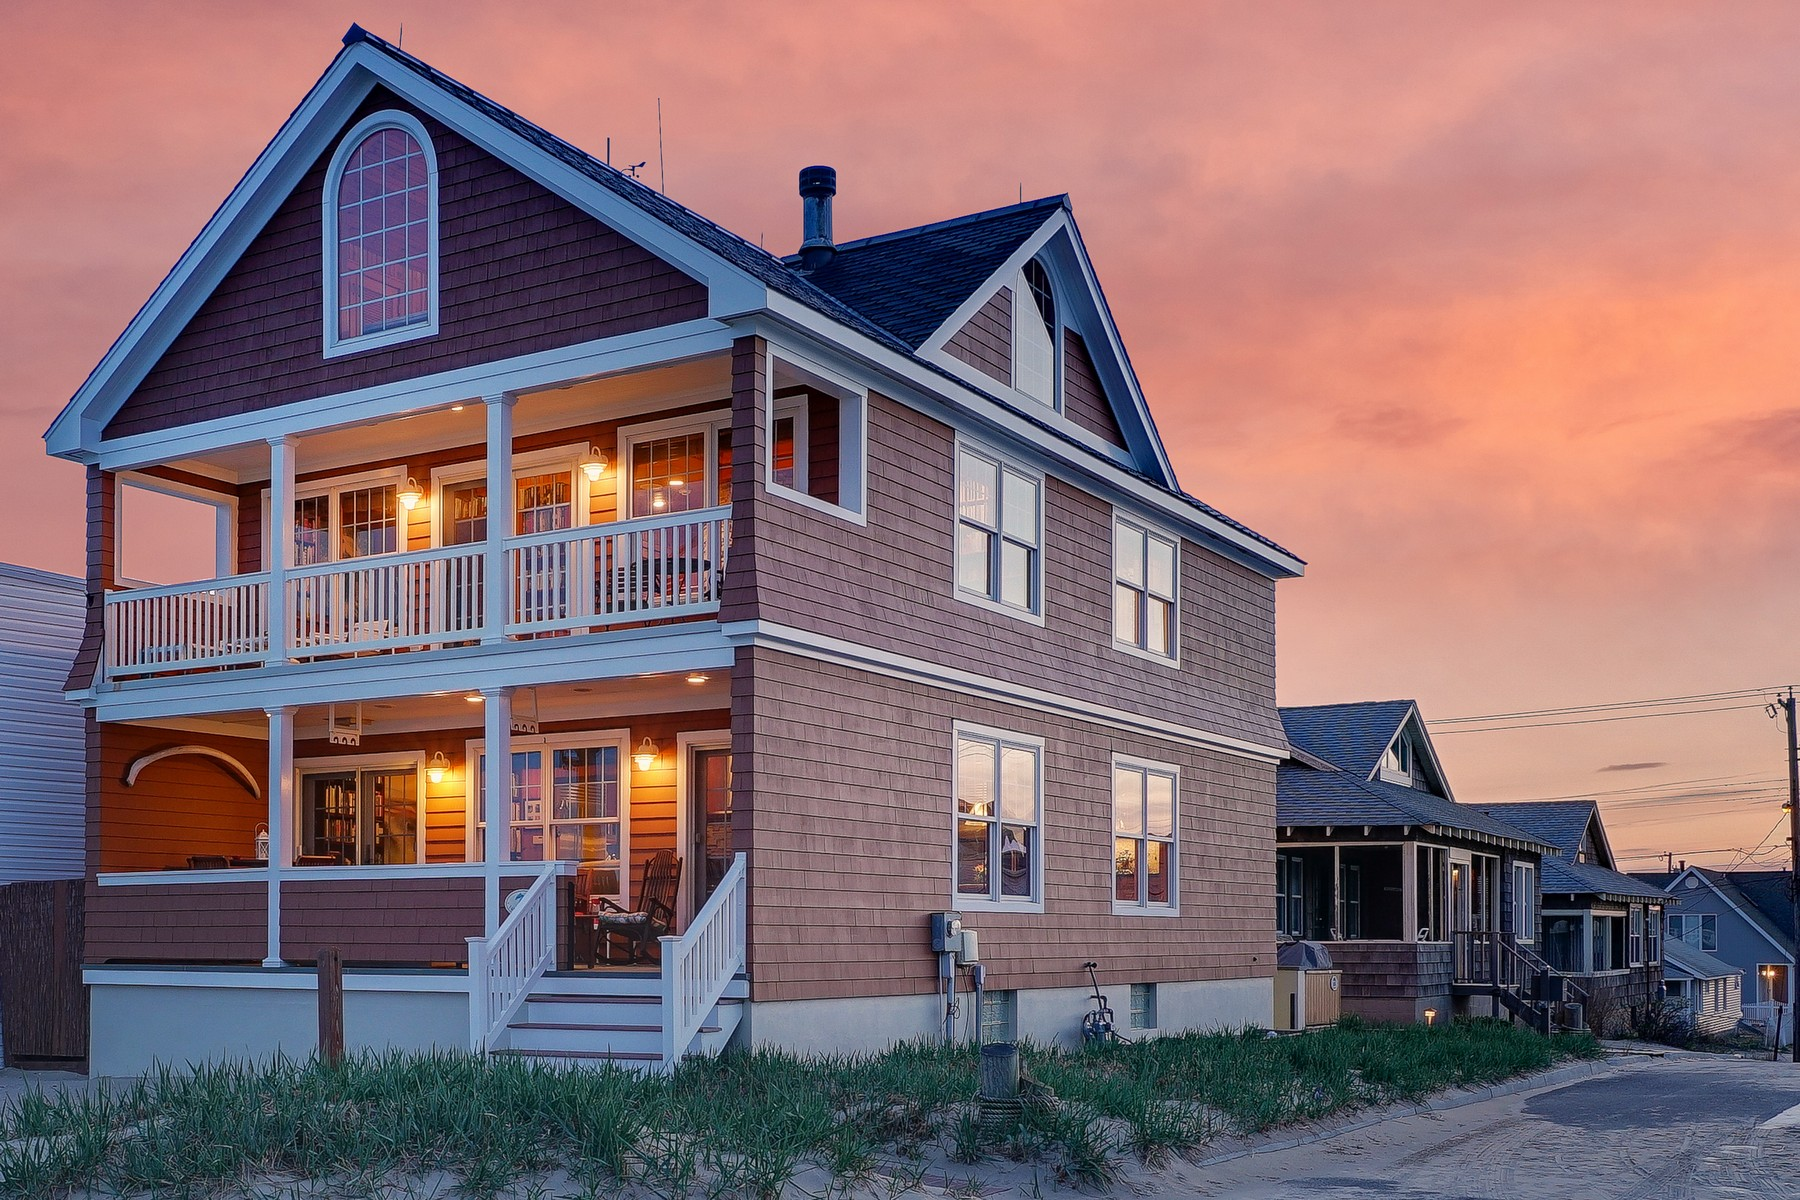 Single Family Home for Sale at Custom Beachfront 145 Beachfront Manasquan, 08736 United States